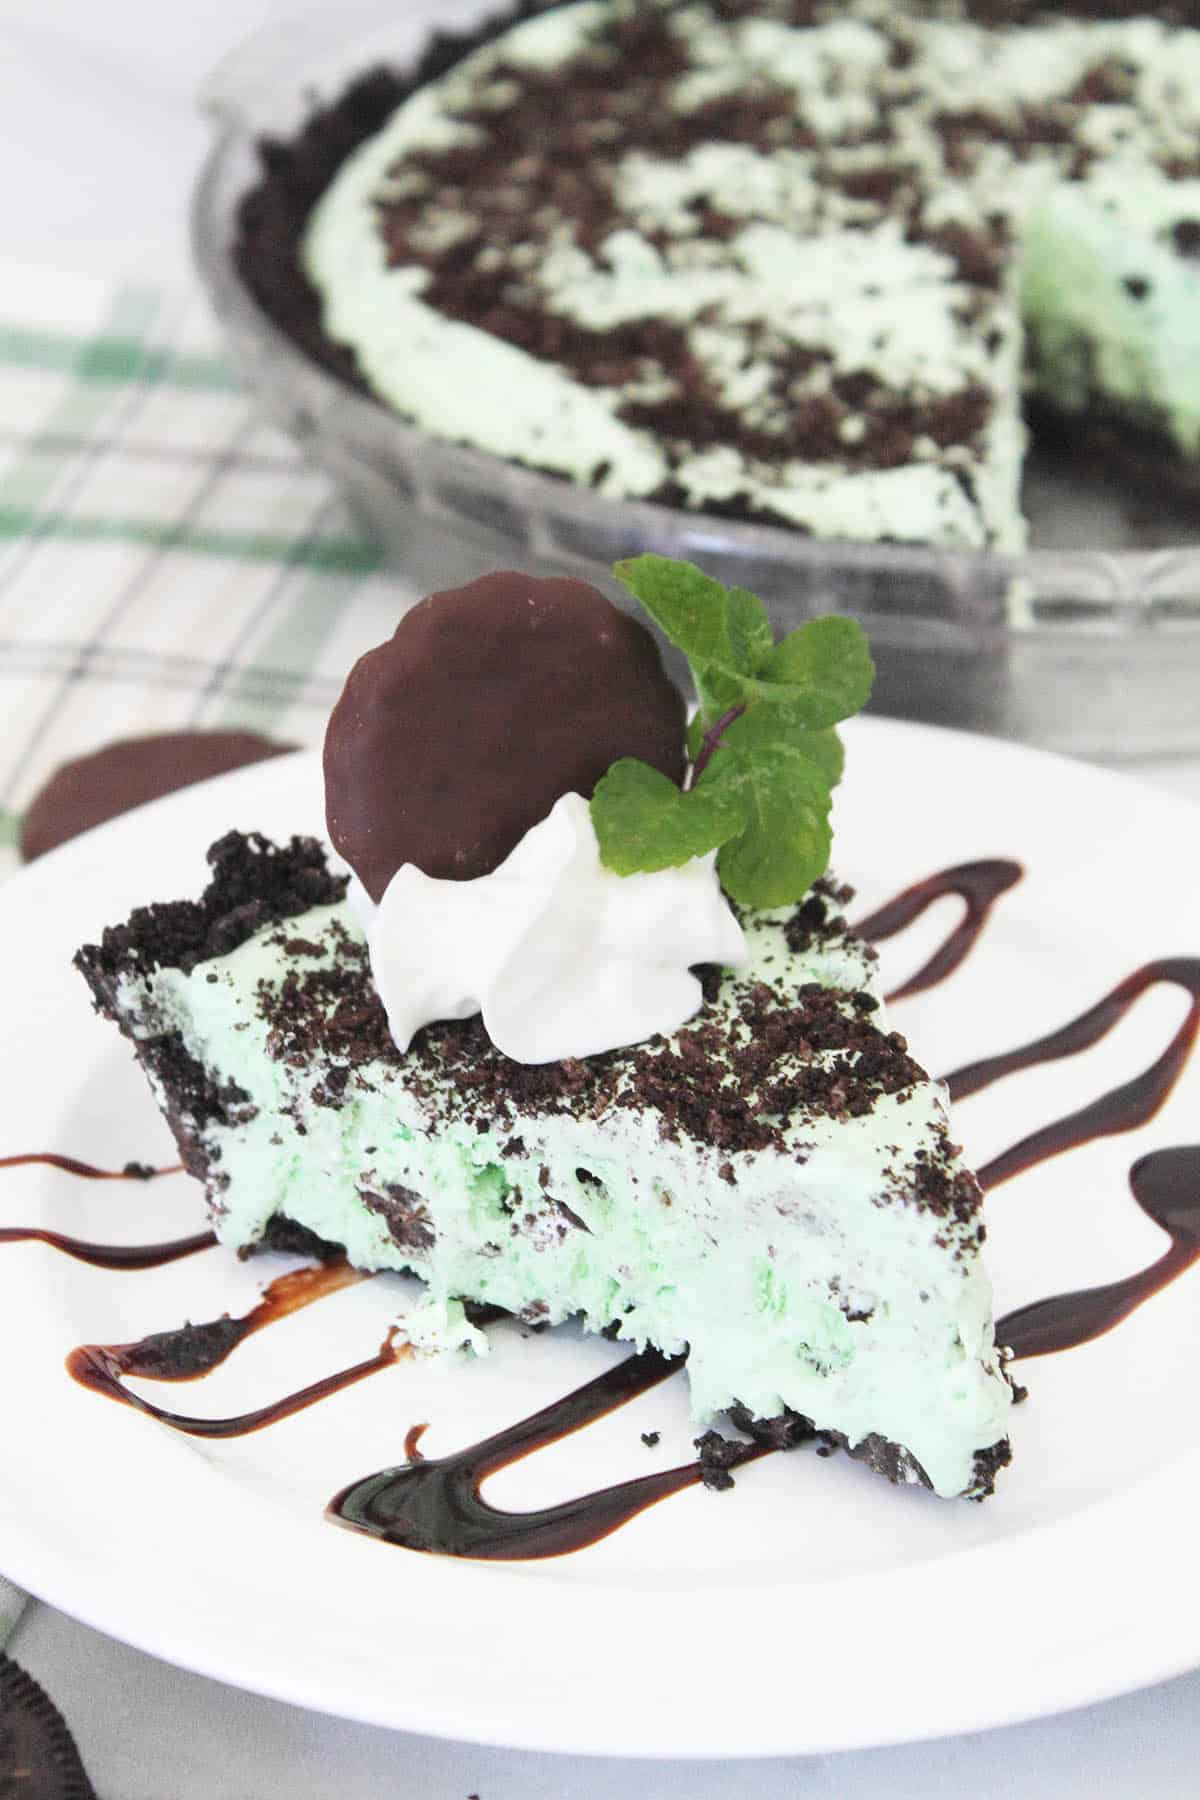 Slice of grasshopper pie on chocolate decorated plate with whole pie in back.